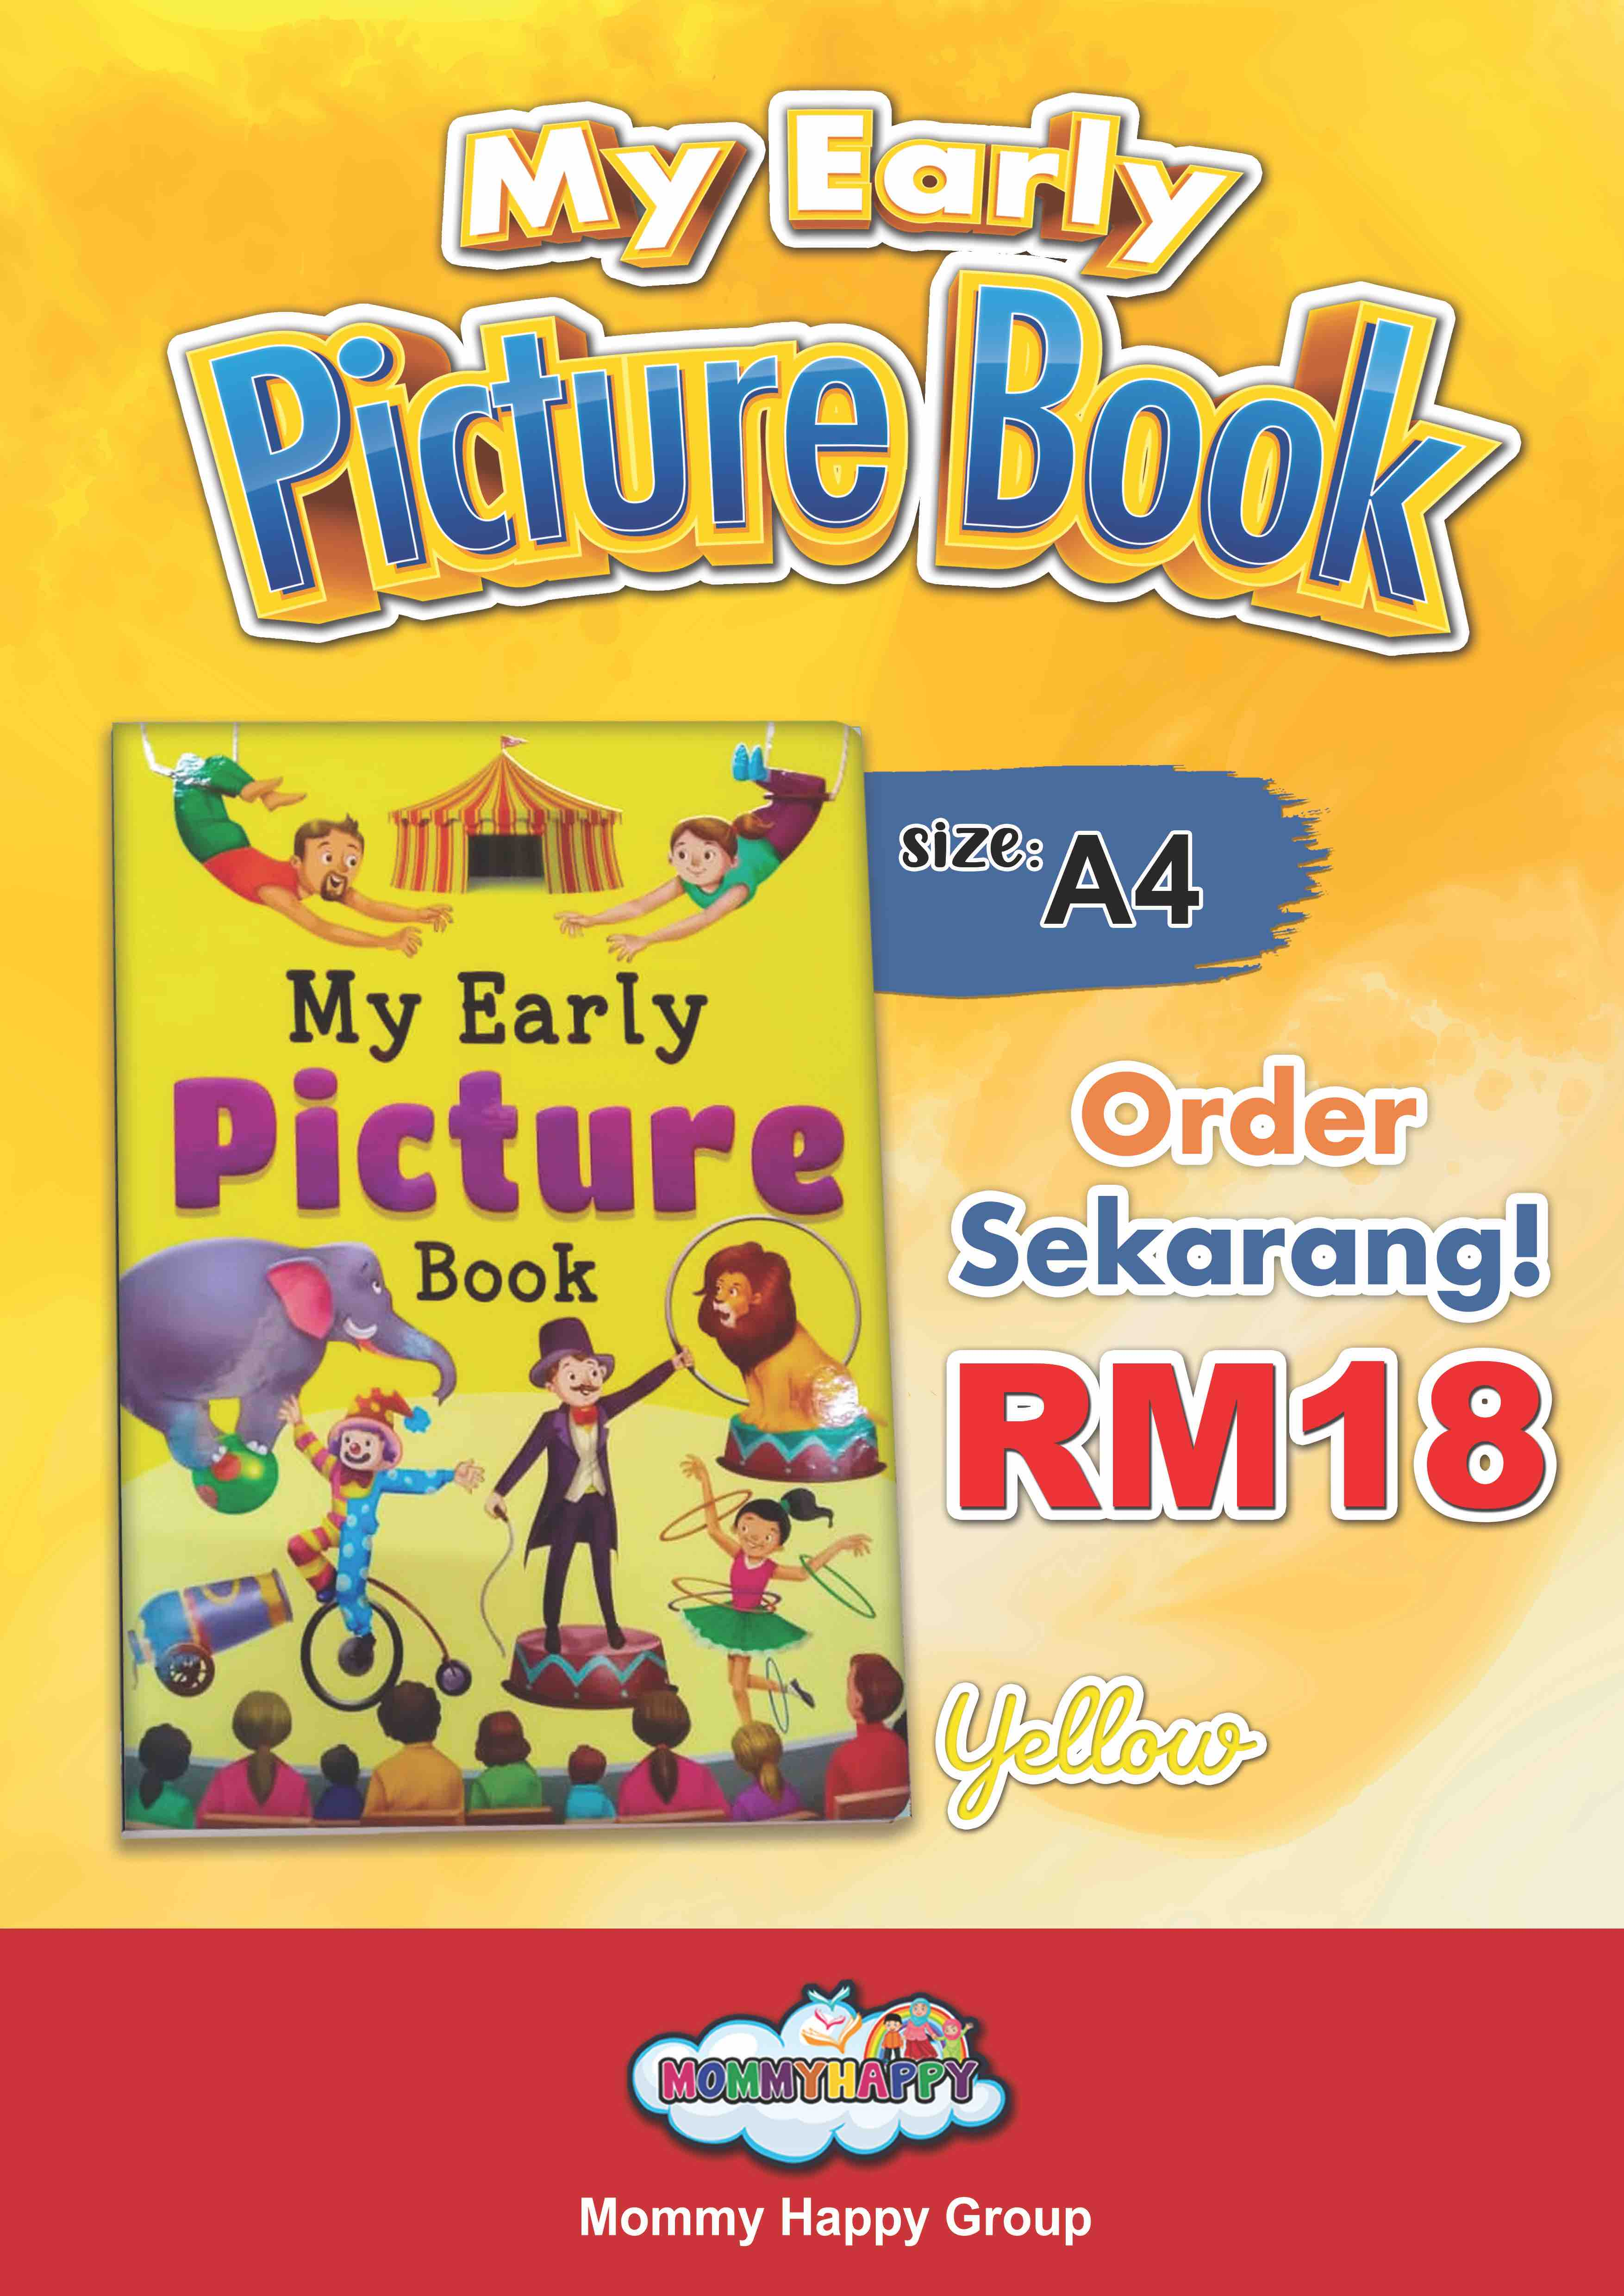 MAYBK03-MY EARLY PICTURE BOOK